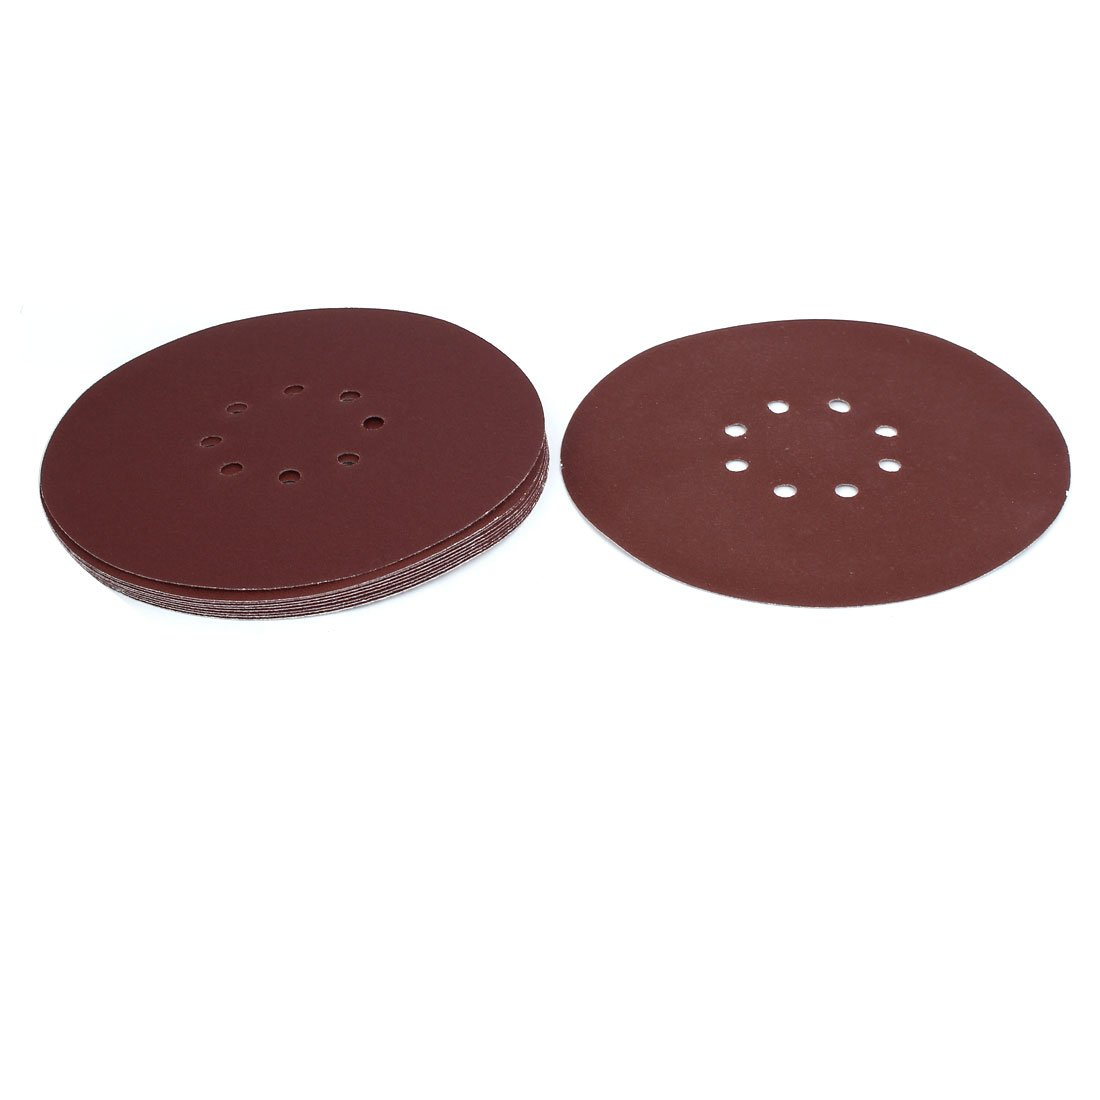 uxcell 9-inch Dia 120 Grits 8 Hole Hook-And-Loop Sanding Disc Polishing Pad 10pcs